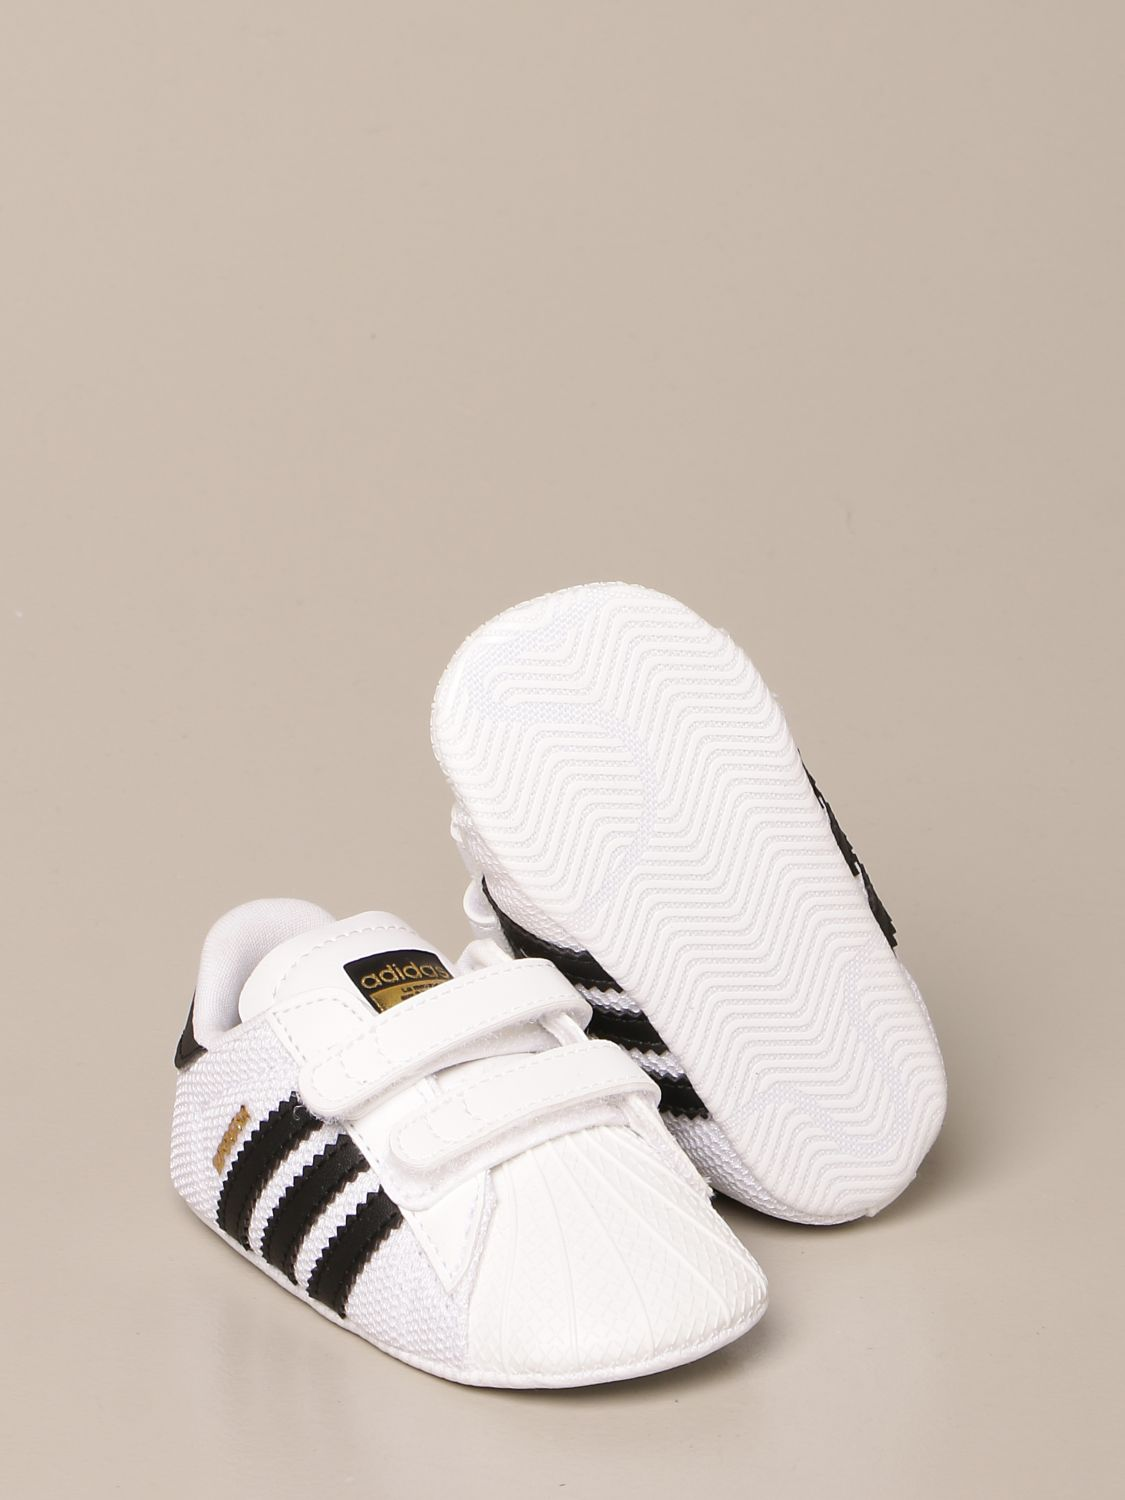 Zapatos Adidas Originals: Zapatos niños Adidas Originals blanco 2